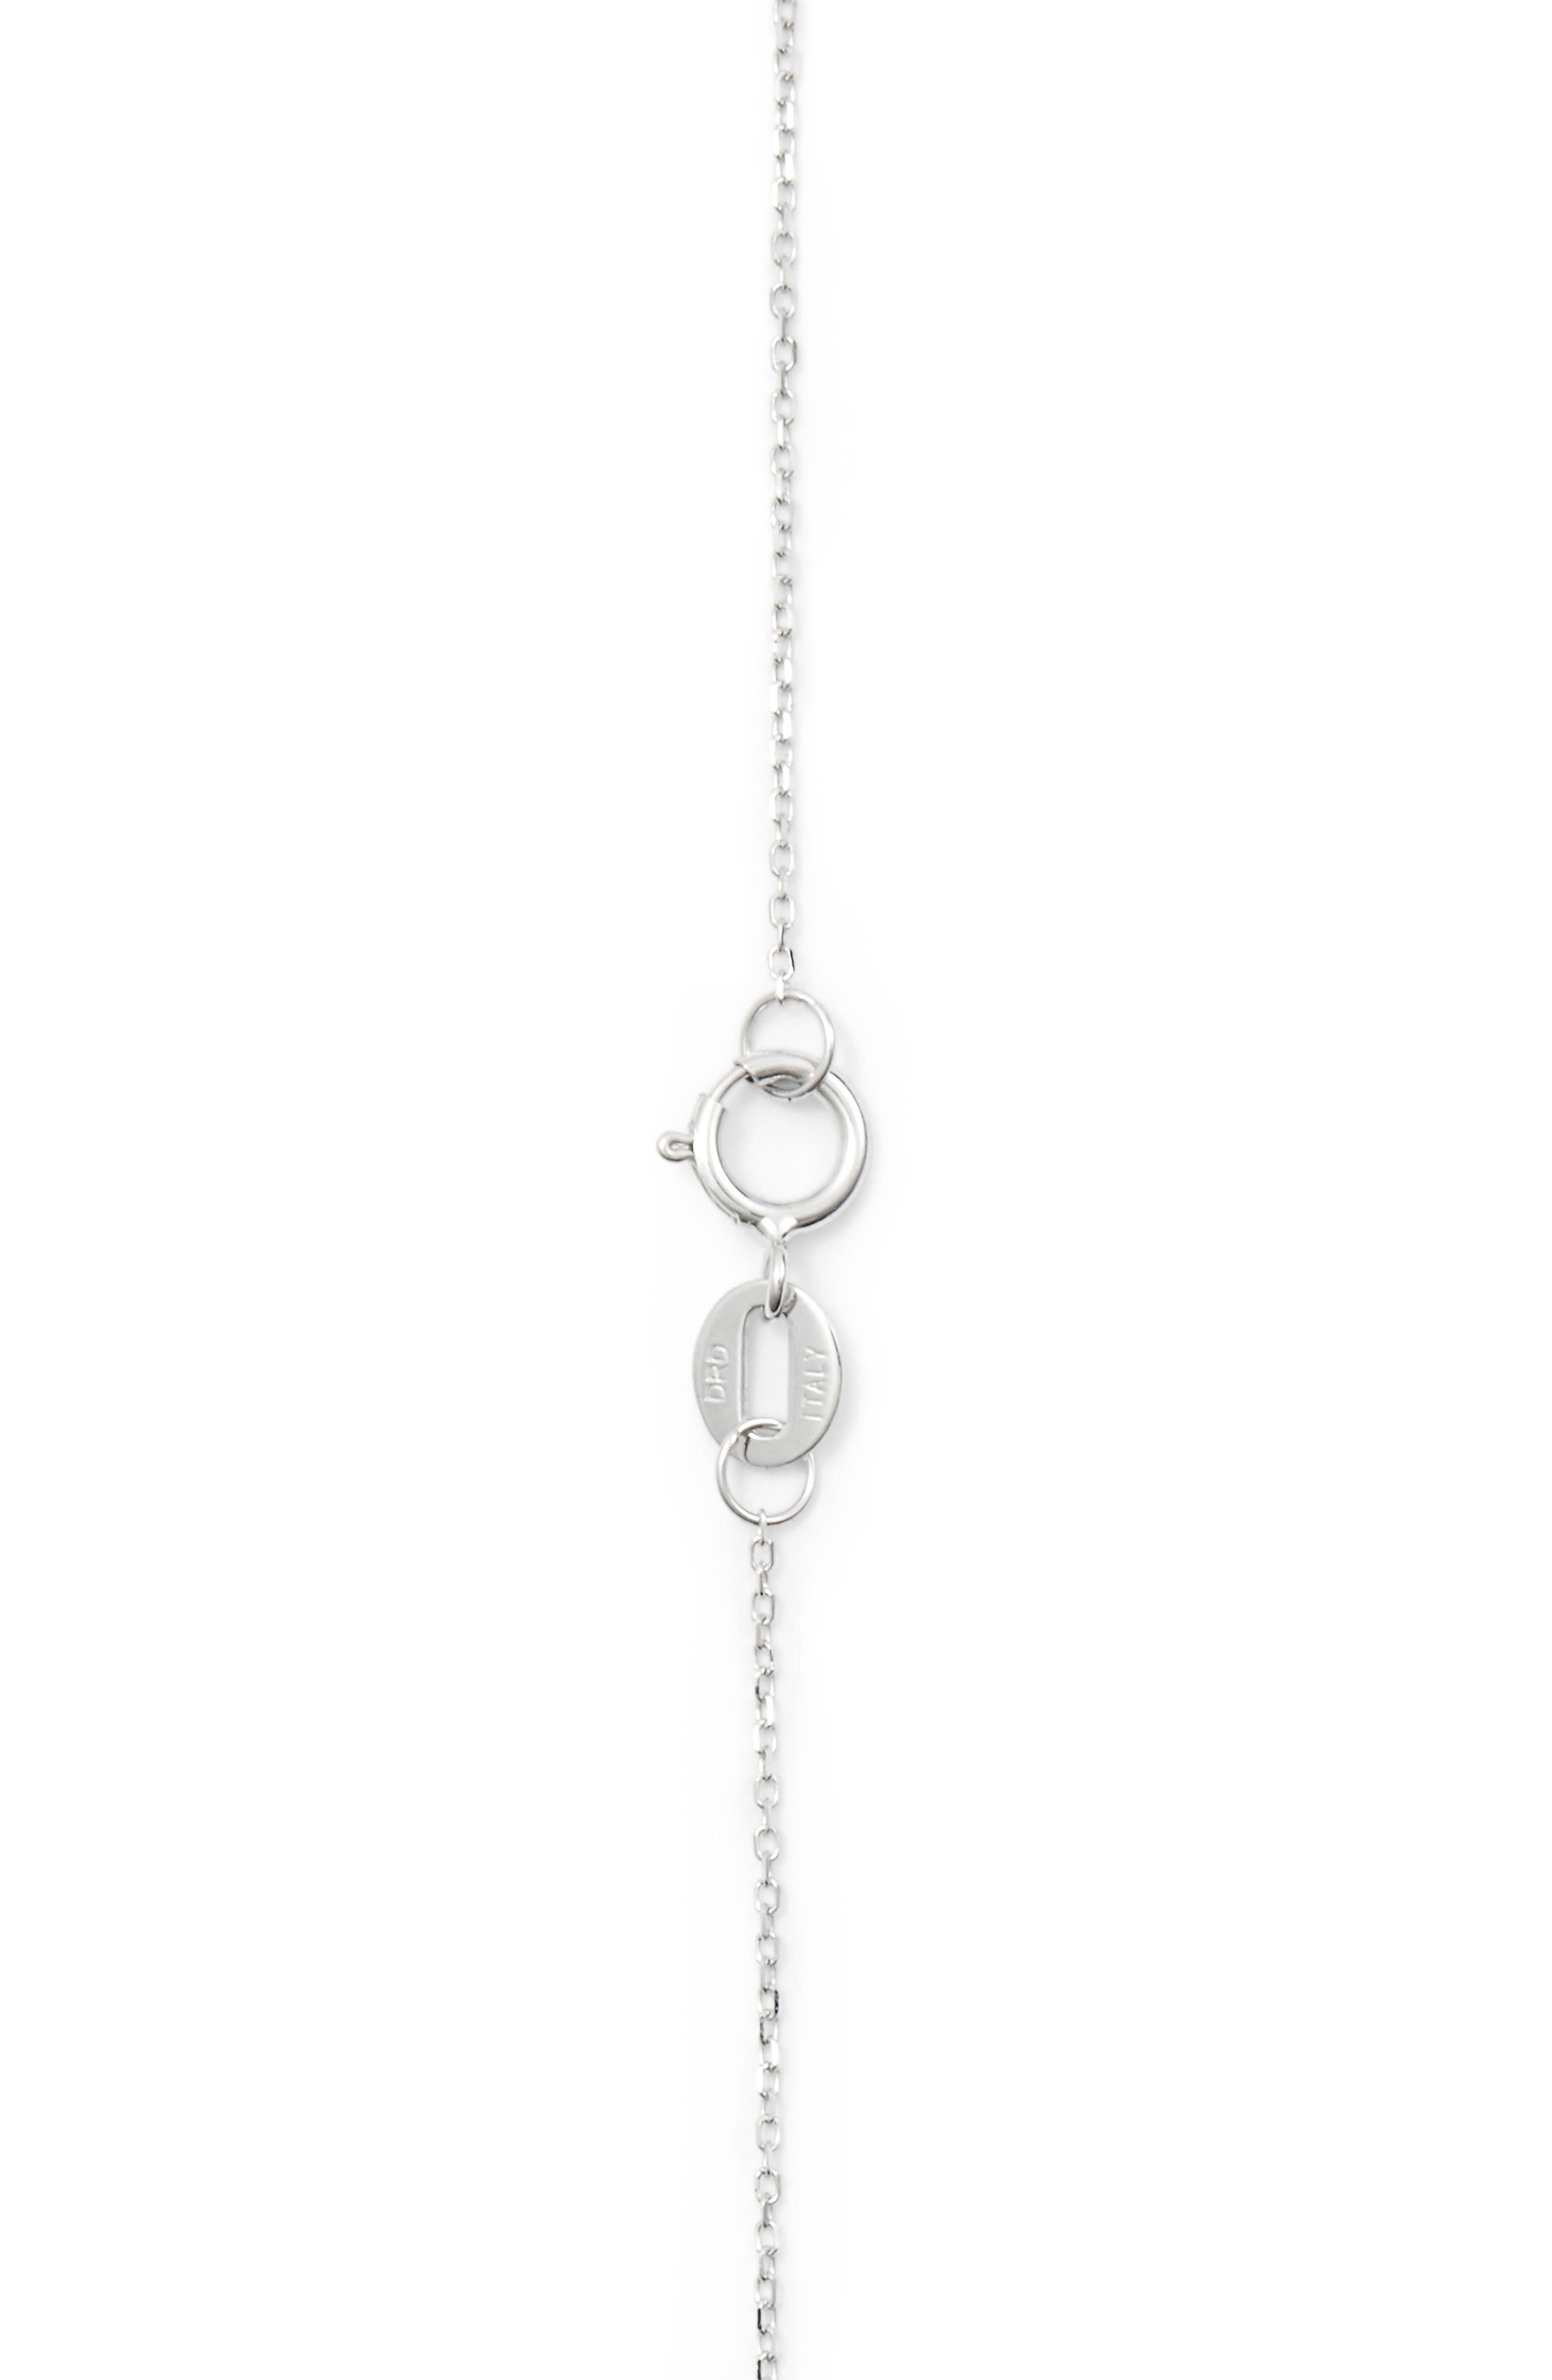 'Emily Sarah' Diamond Triangle Pendant Necklace,                             Alternate thumbnail 5, color,                             White Gold